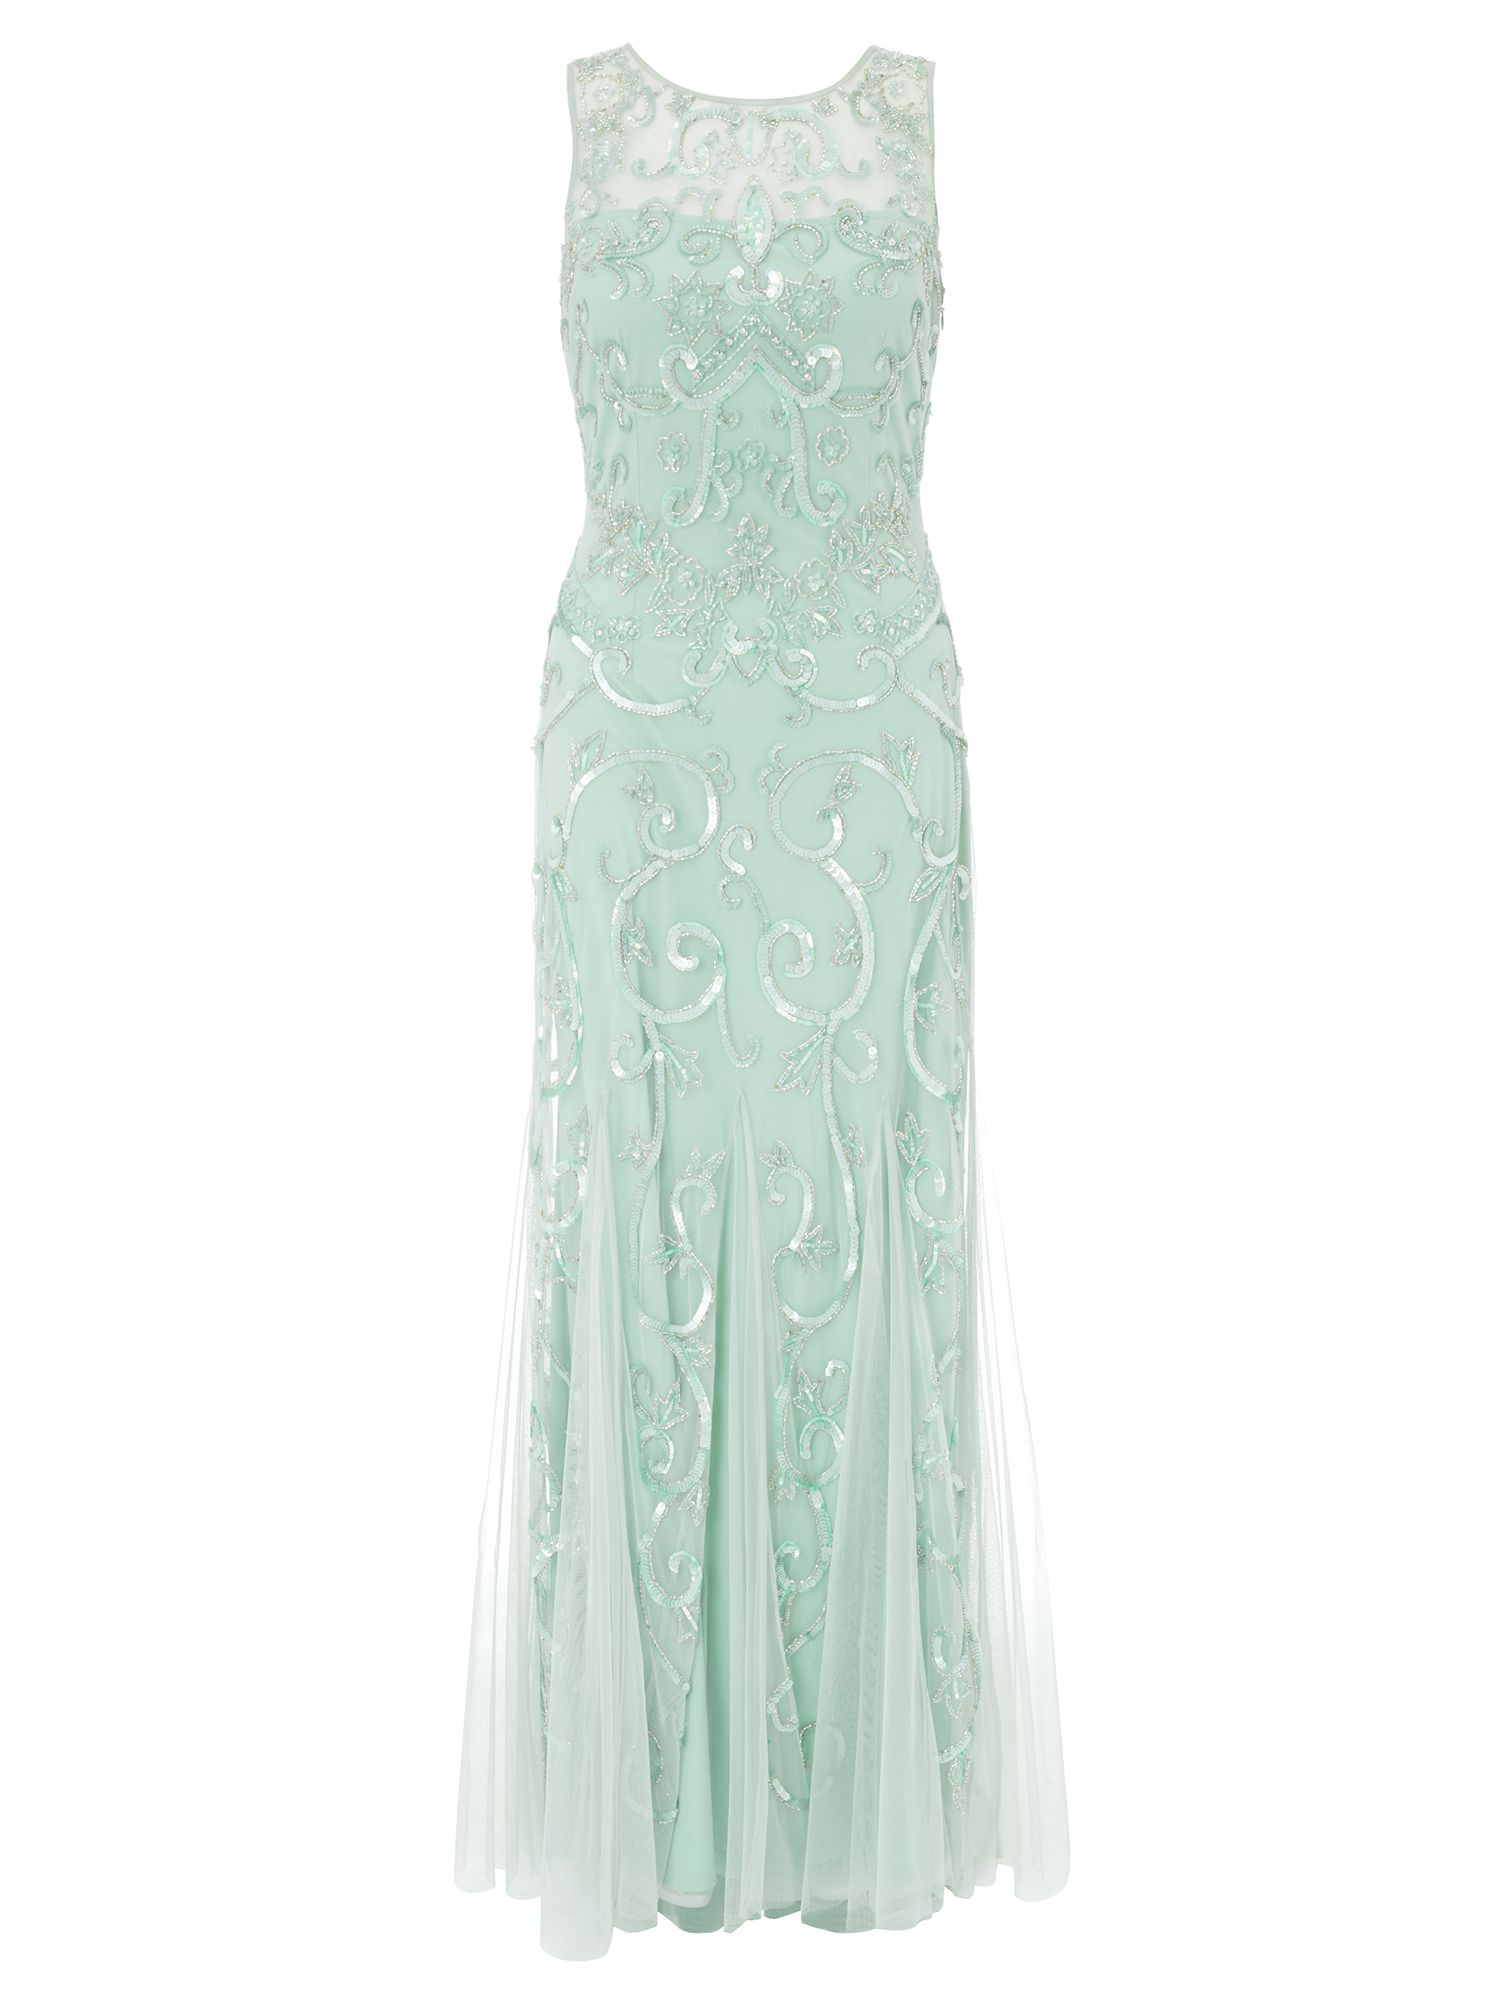 Ariella Karla Sequin  Beaded Evening Gown $295.00 AT vintagedancer.com